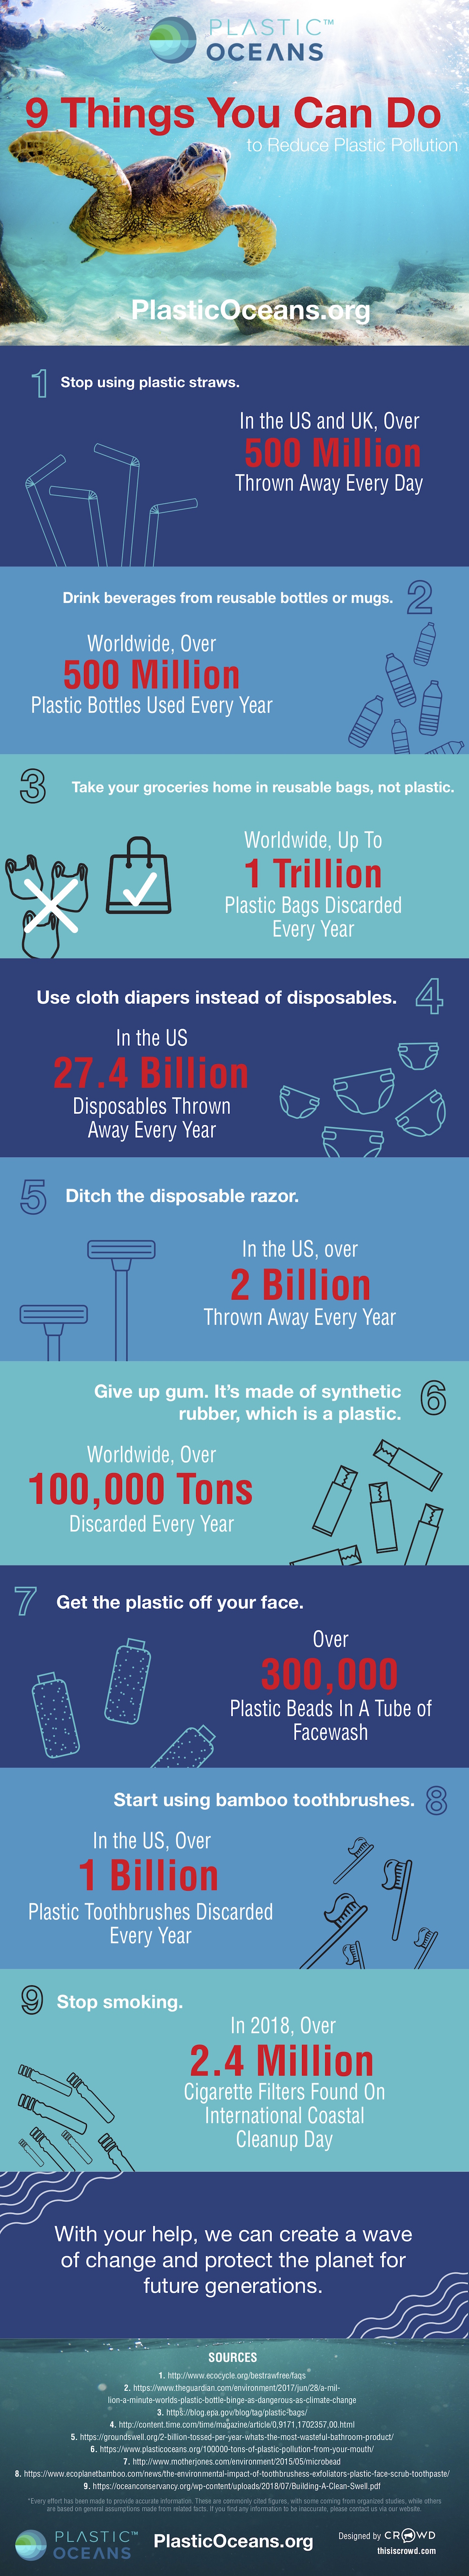 Infographic: 9 Things You Can Do to Reduce Plastic Pollution